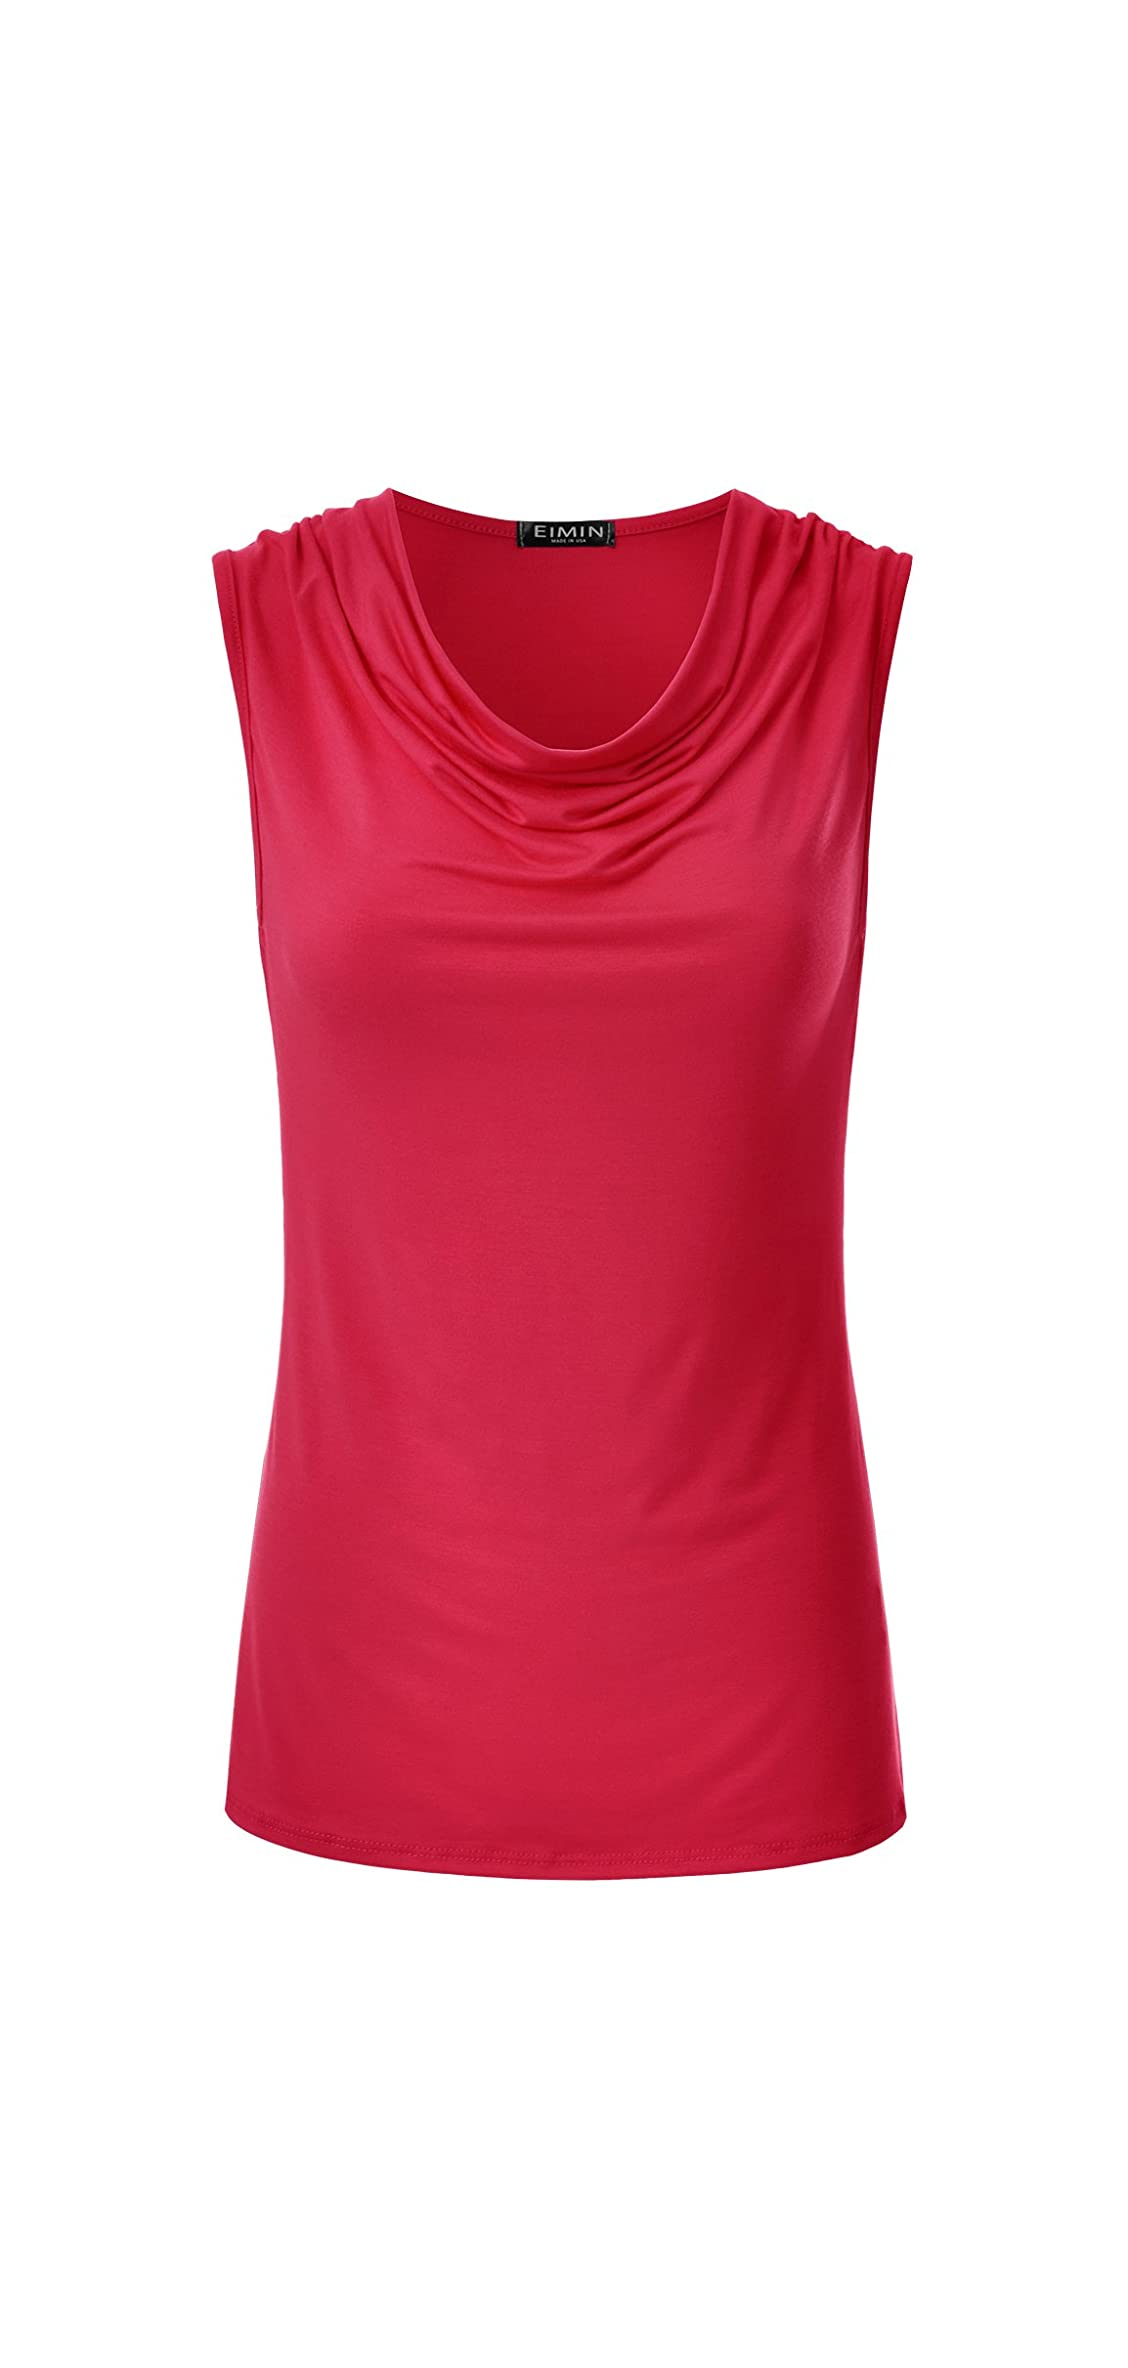 Women's Cowl Neck Ruched Draped Sleeveless Stretchy Blouse